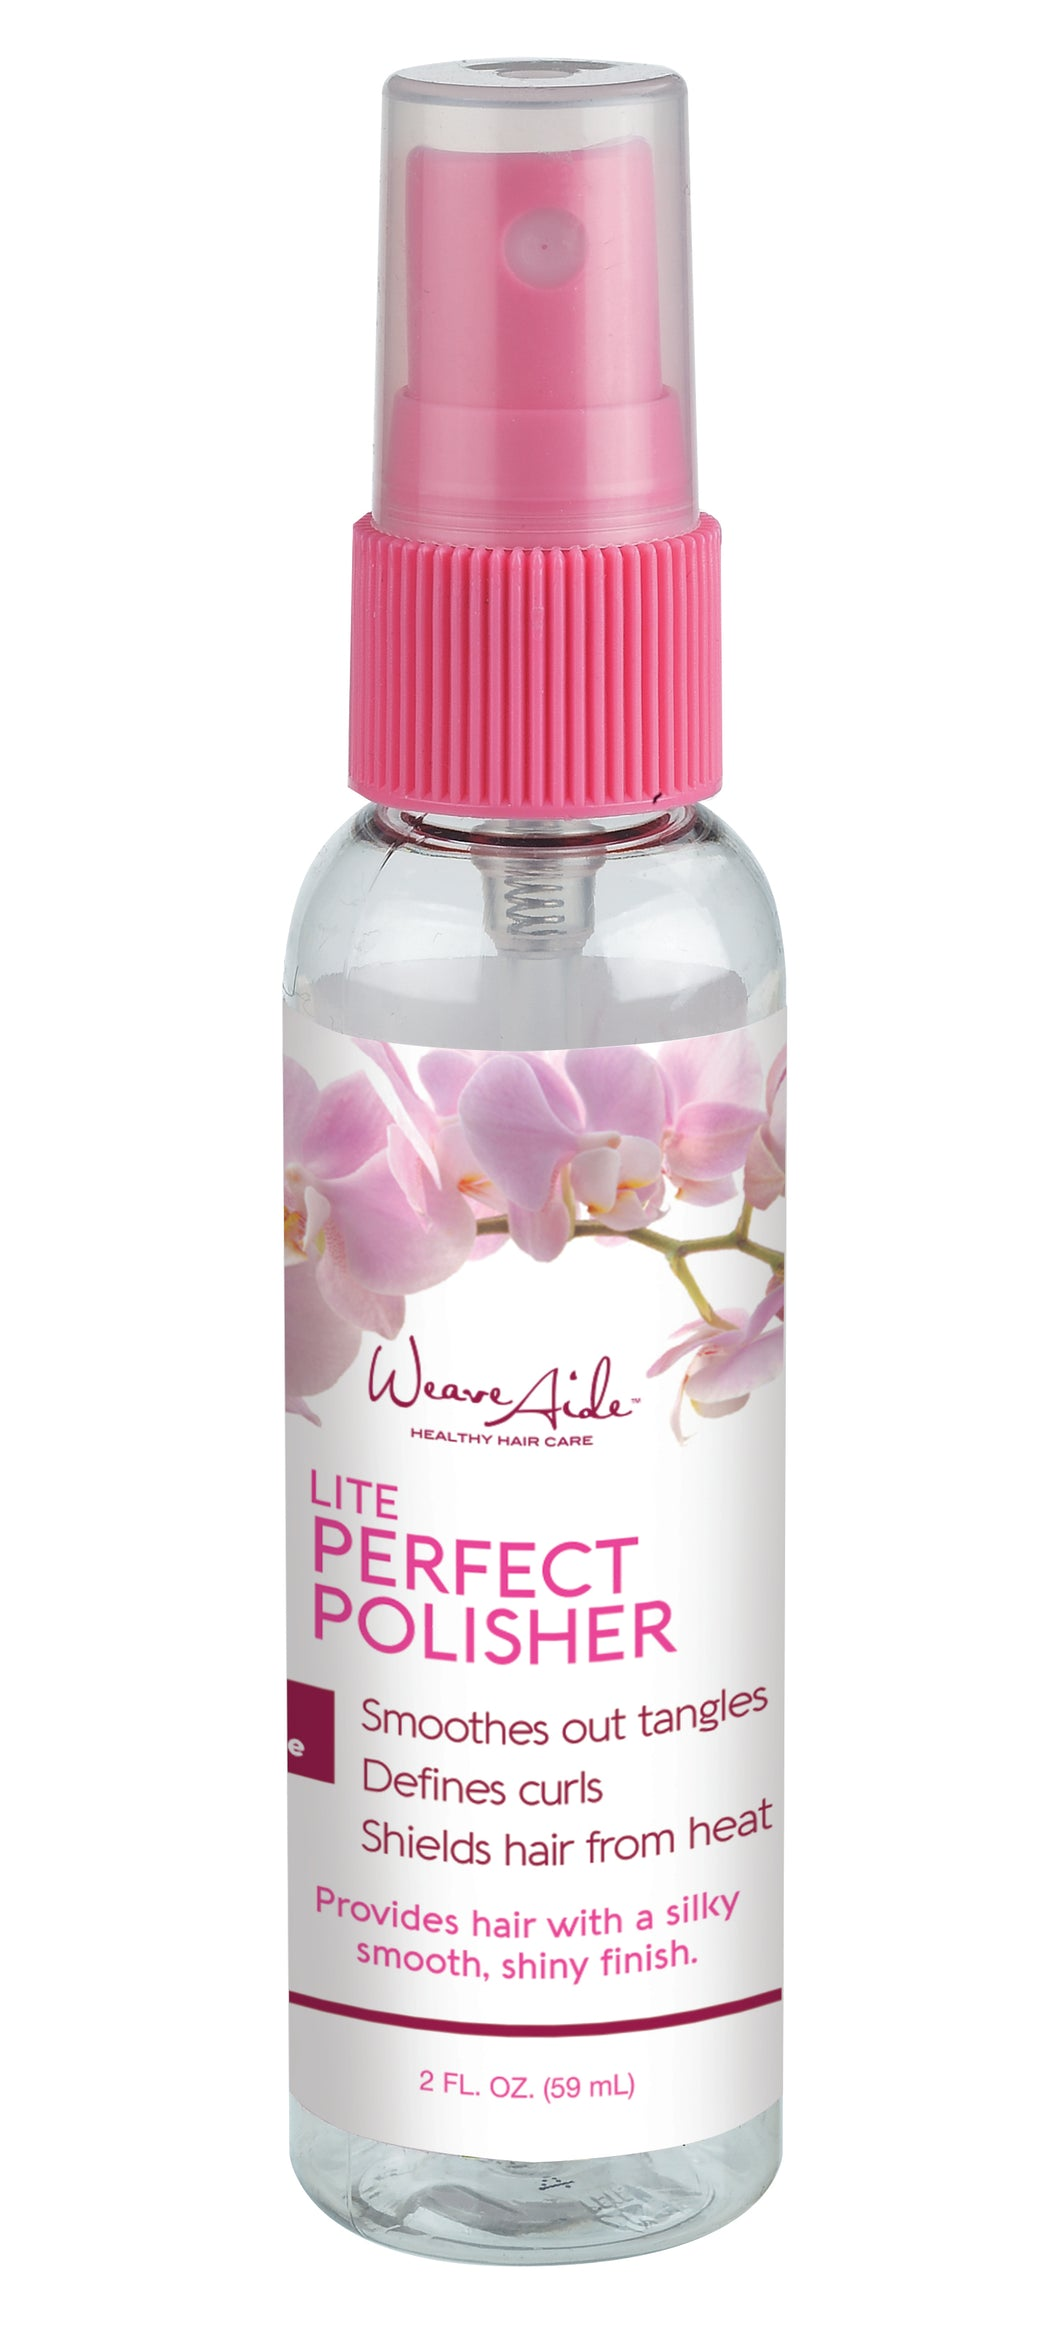 2 oz. Lite Perfect Polisher | Best Lite Perfect Polisher | Lite Perfect Spray Polisher